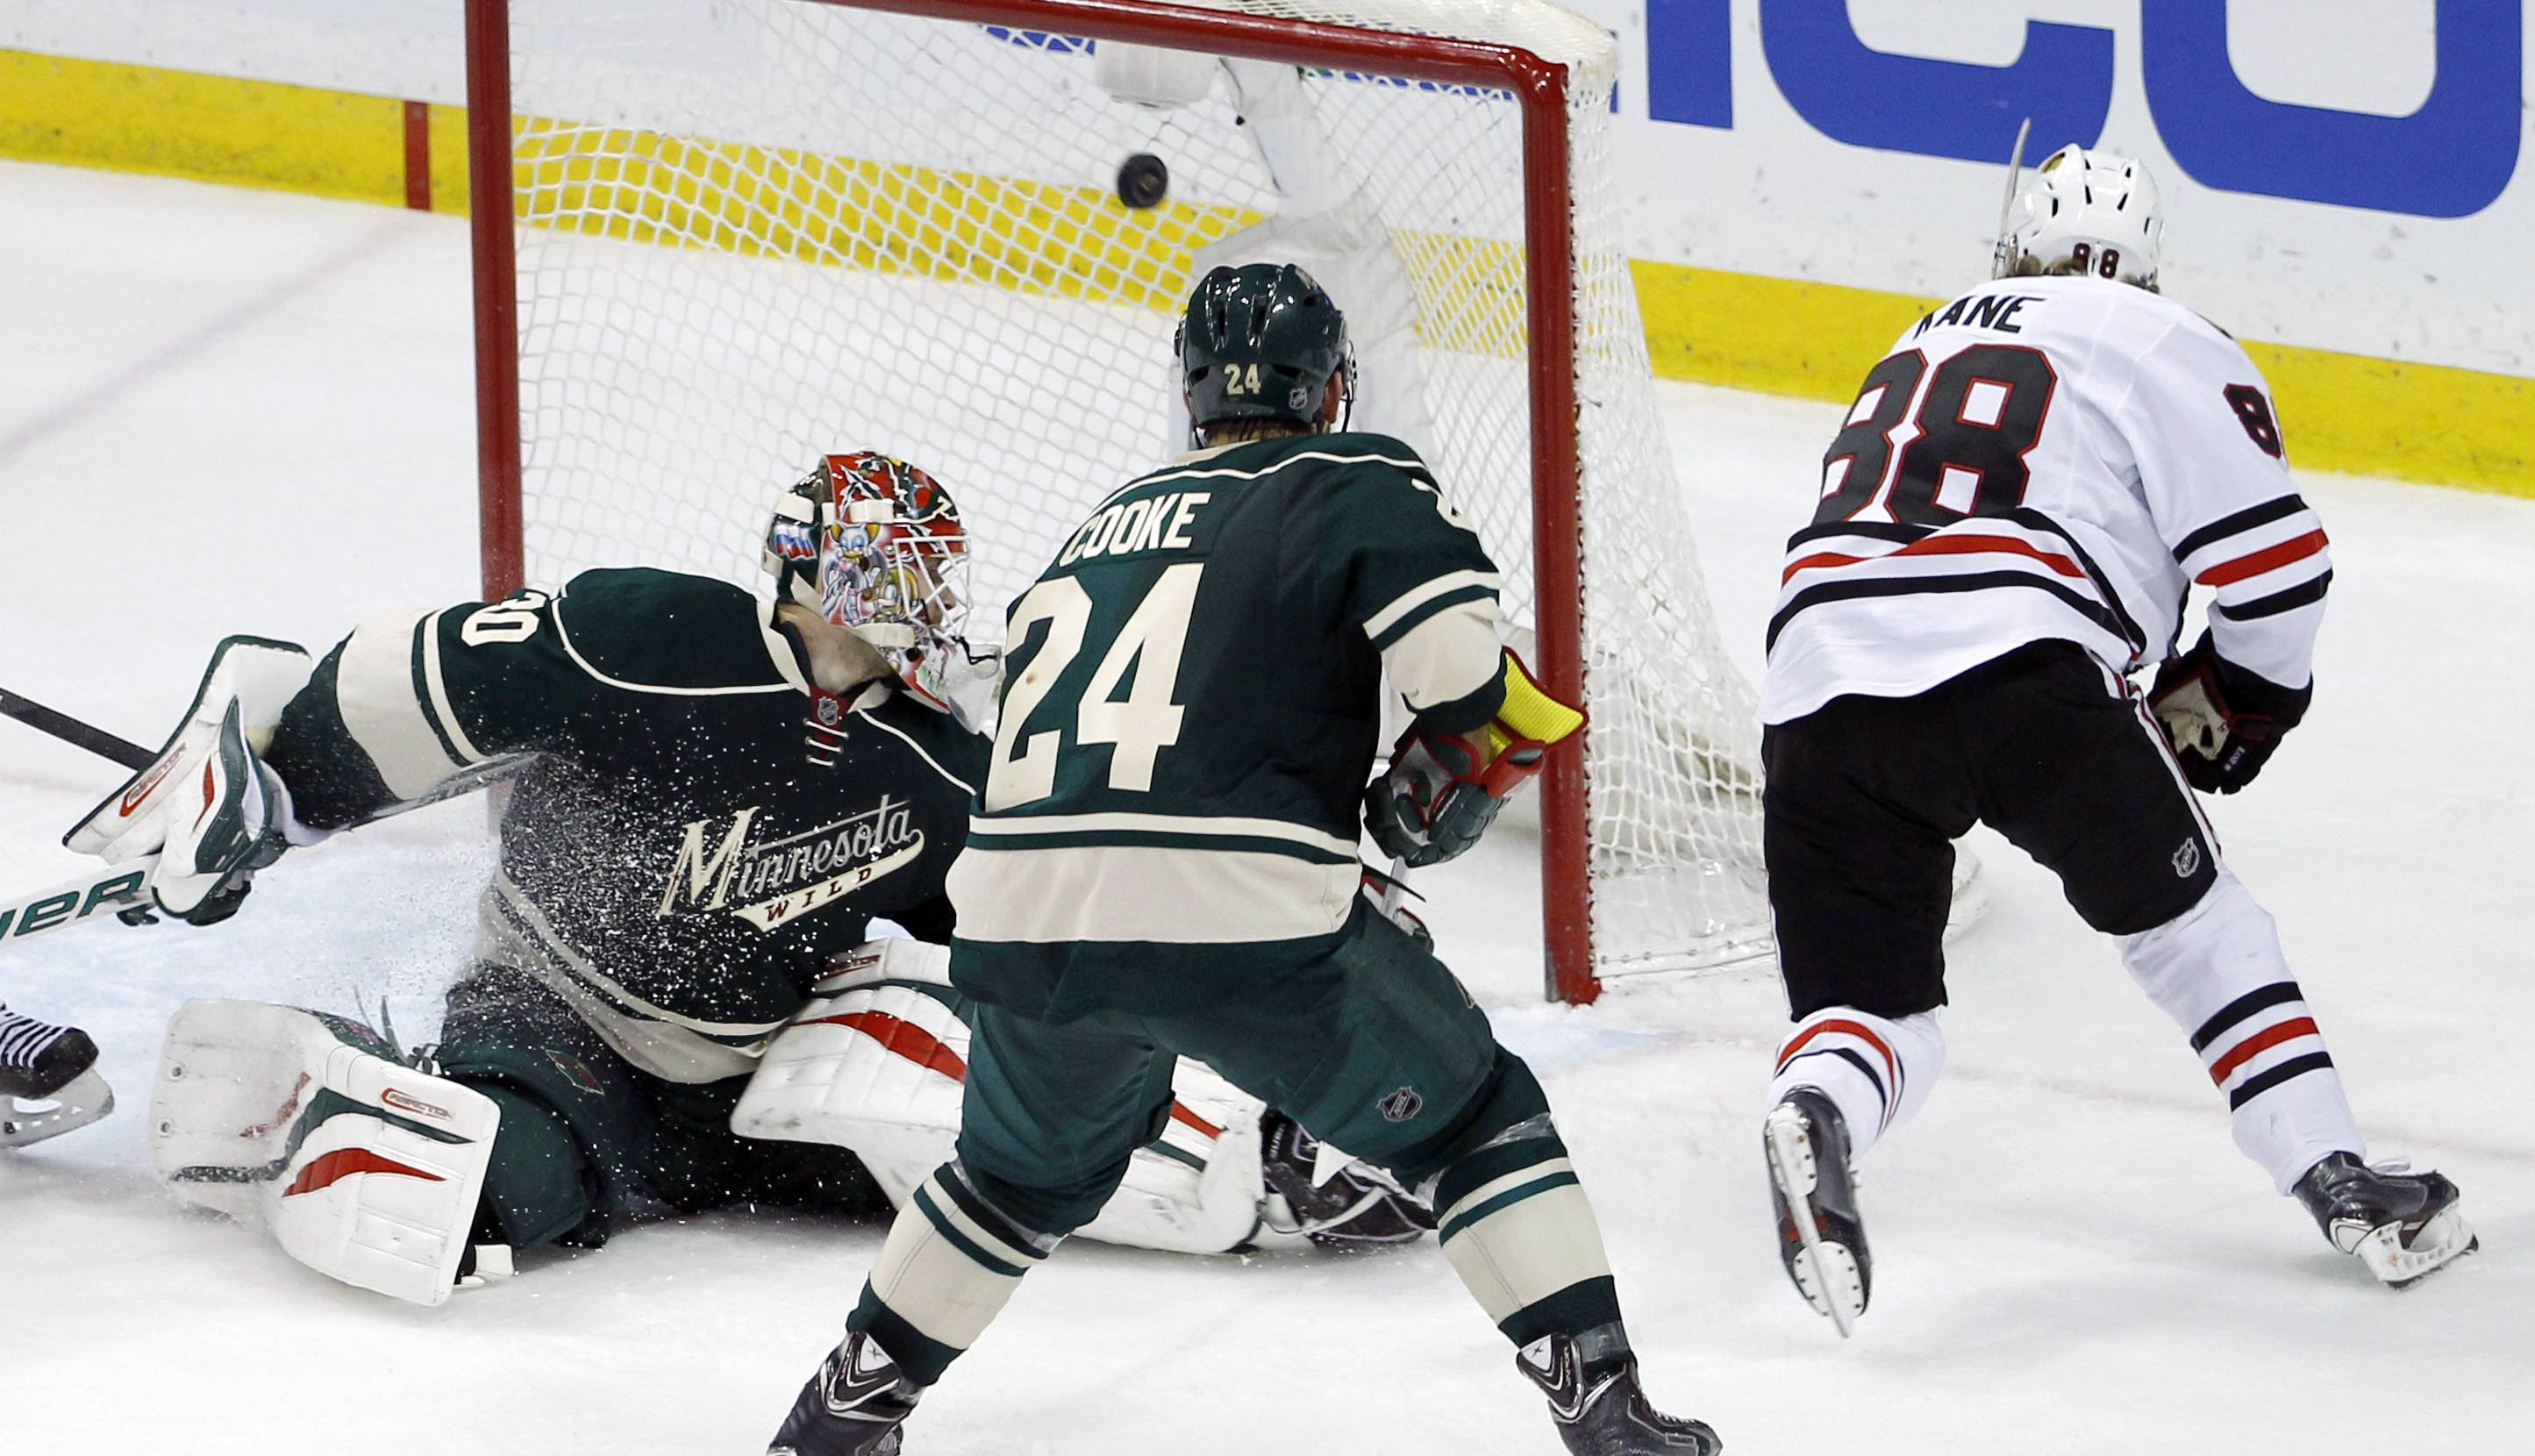 The game-winning shot by Chicago Blackhawks right wing Patrick Kane (88) gets past Minnesota Wild goalie Ilya Bryzgalov, left, of Russia, in front of Wild left wing Matt Cooke (24) during overtime.